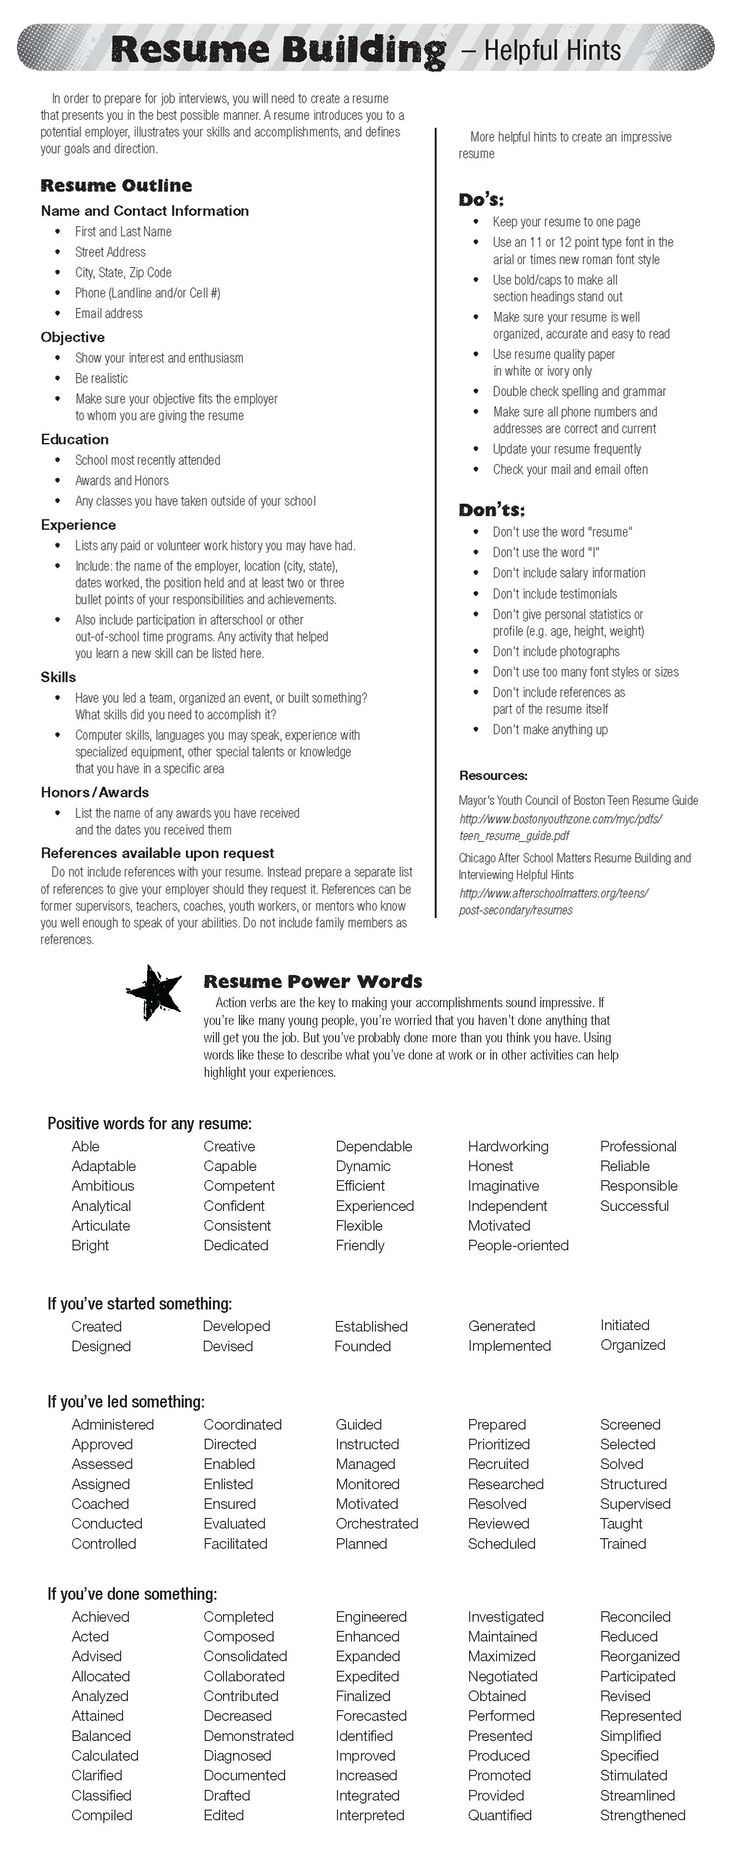 Opposenewapstandardsus  Terrific  Ideas About Resume On Pinterest  Cv Format Resume Cv And  With Engaging  Ideas About Resume On Pinterest  Cv Format Resume Cv And Resume Templates With Delightful Help With My Resume Also Example Summary For Resume In Addition Free Downloadable Resume Templates For Word And Walmart Resume As Well As Resume Samples For Students Additionally Pre Med Resume From Pinterestcom With Opposenewapstandardsus  Engaging  Ideas About Resume On Pinterest  Cv Format Resume Cv And  With Delightful  Ideas About Resume On Pinterest  Cv Format Resume Cv And Resume Templates And Terrific Help With My Resume Also Example Summary For Resume In Addition Free Downloadable Resume Templates For Word From Pinterestcom